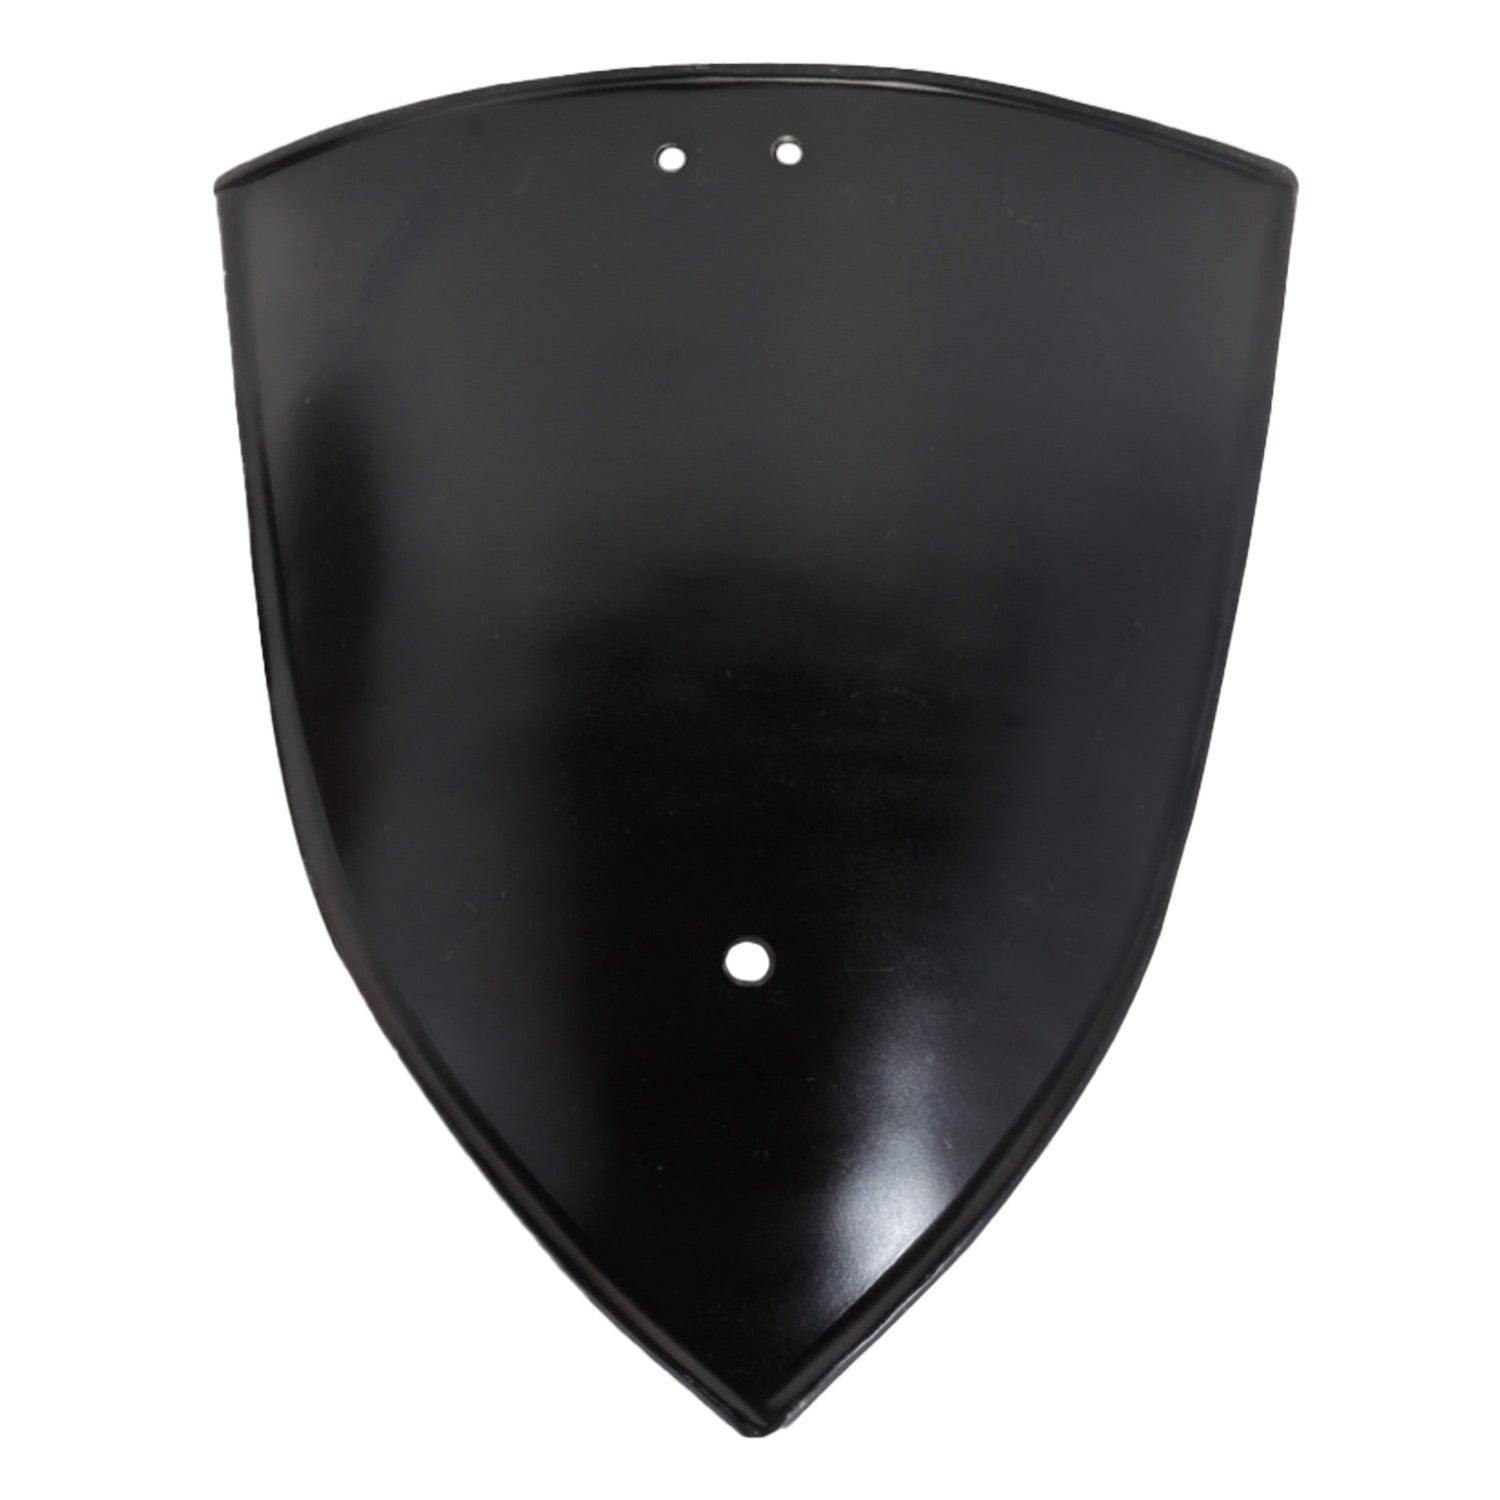 Wilhelm arm shield, large